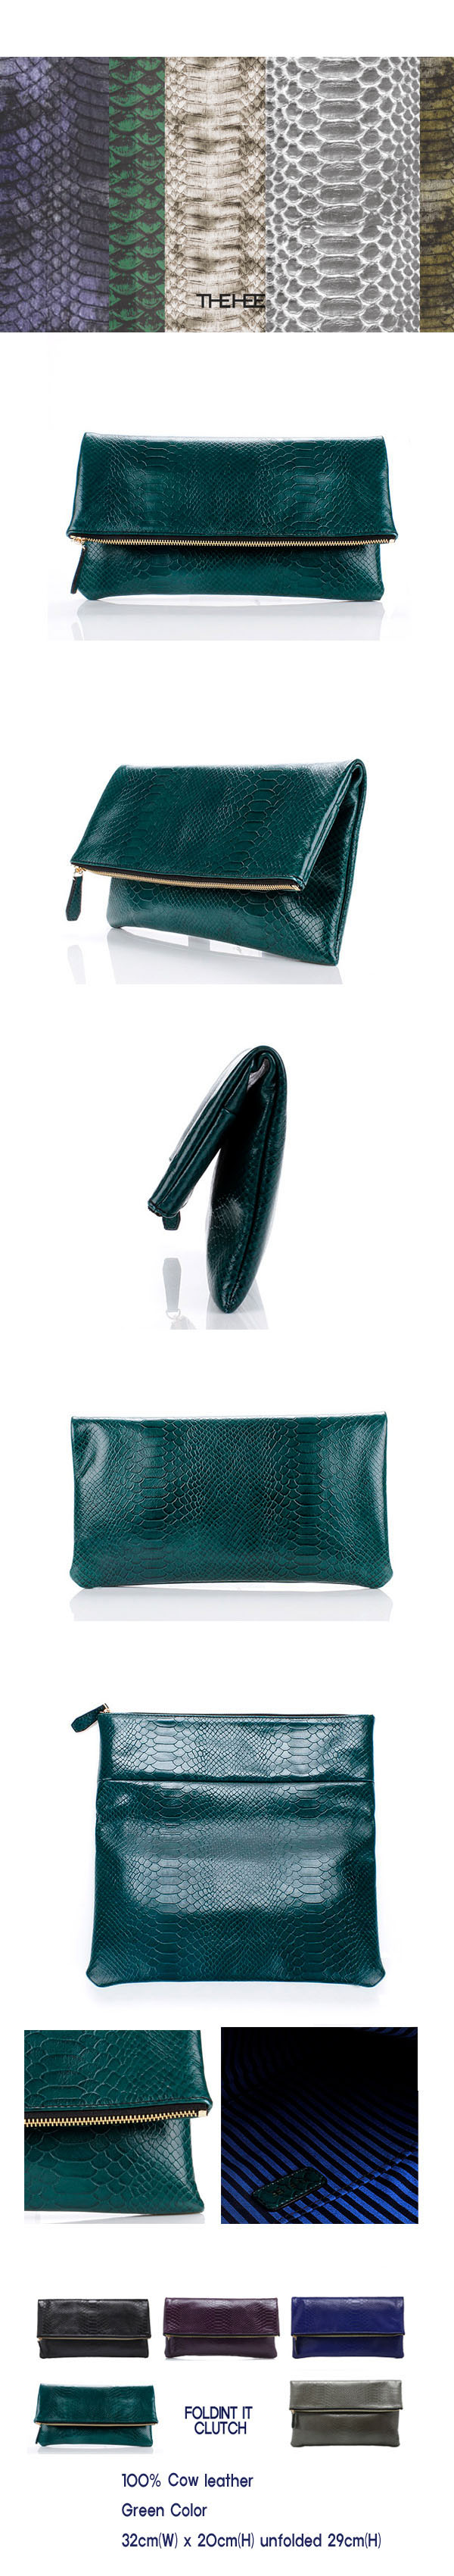 [THEHEE] Leather Clutch Bag - Green